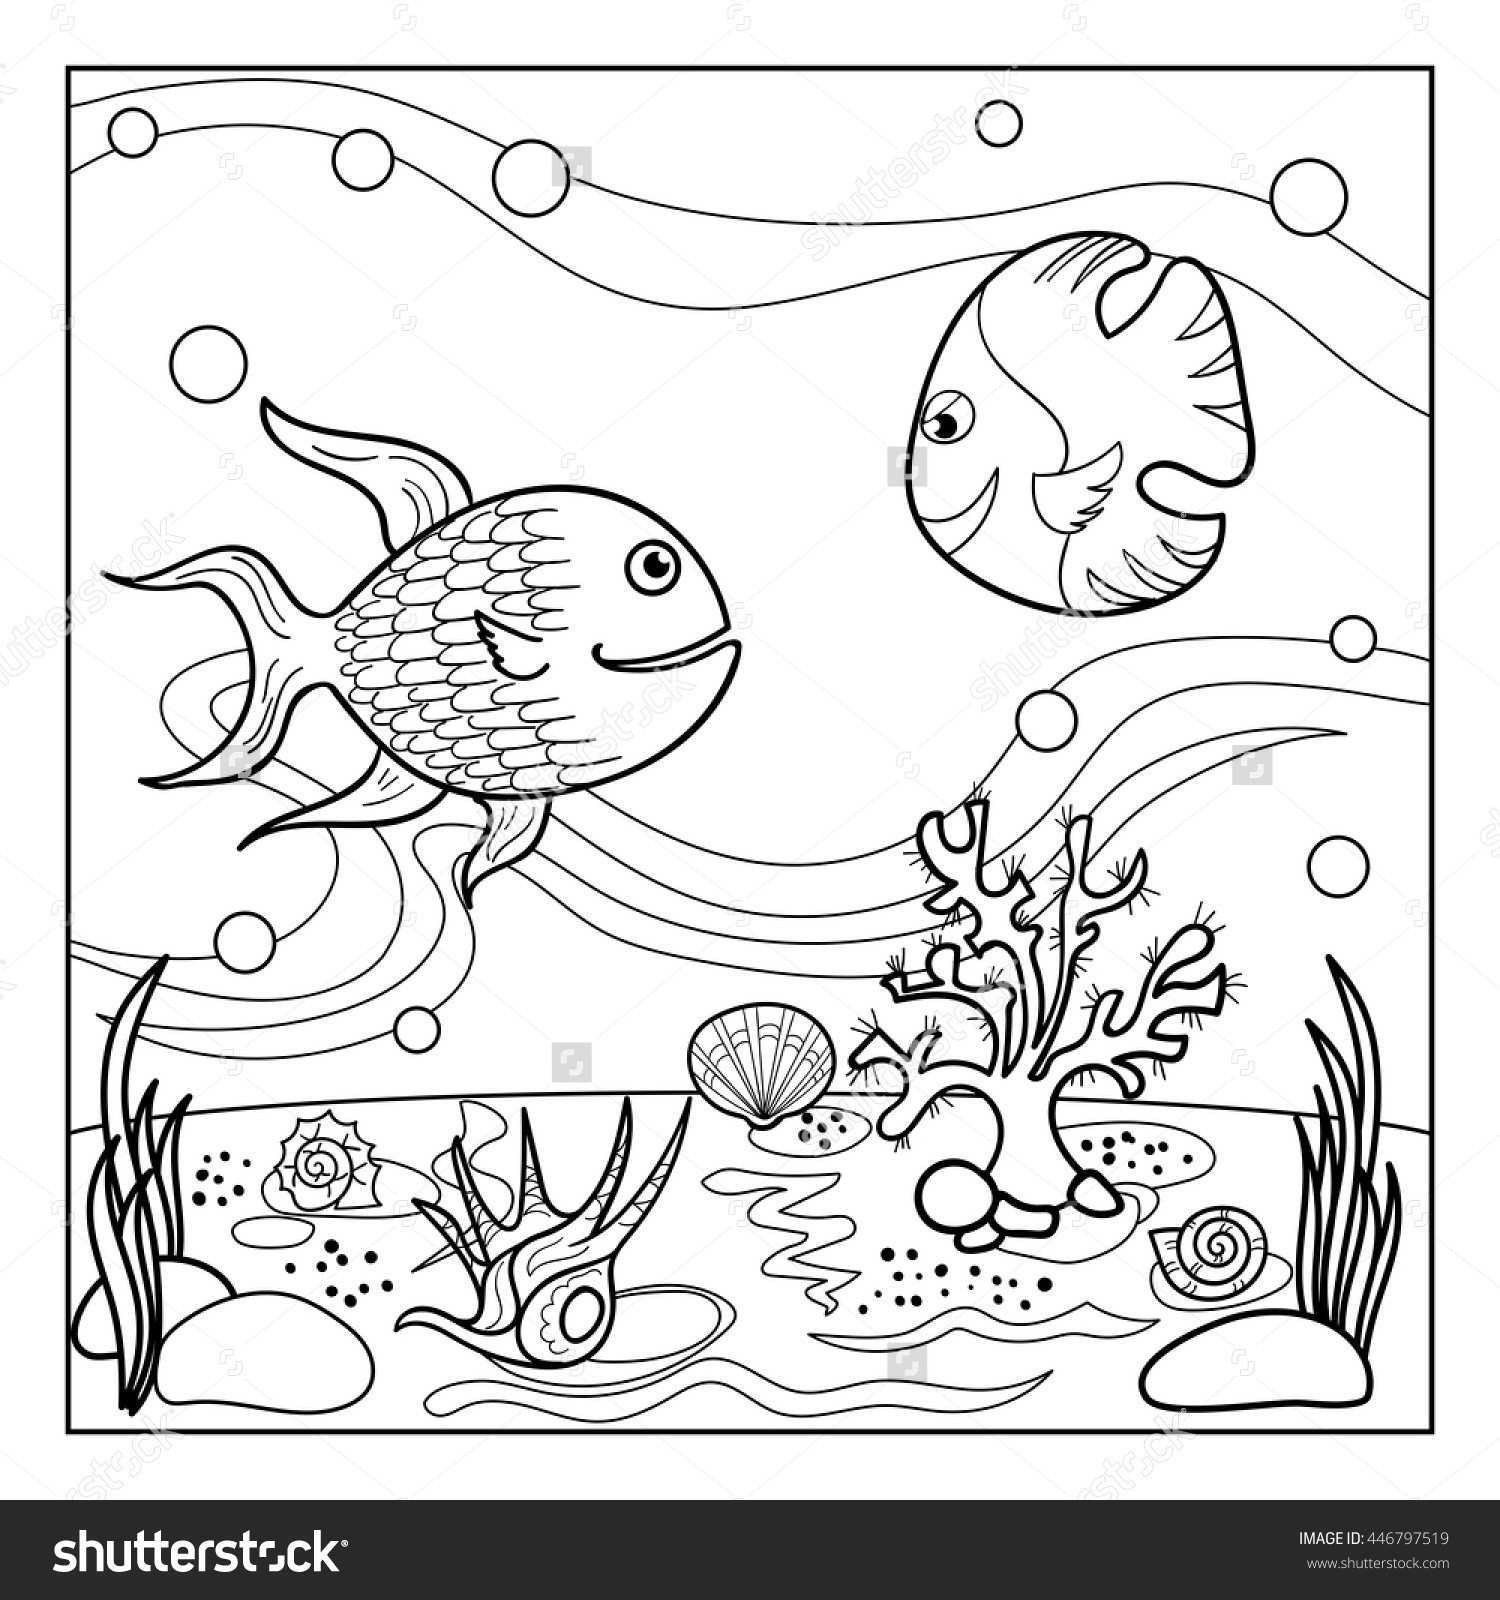 Free Paw Patrol Coloring Pages Unique 70 Best Free Printable Santa Sleigh Coloring Pages Unicorn Coloring Pages Animal Coloring Pages Paw Patrol Coloring Pages